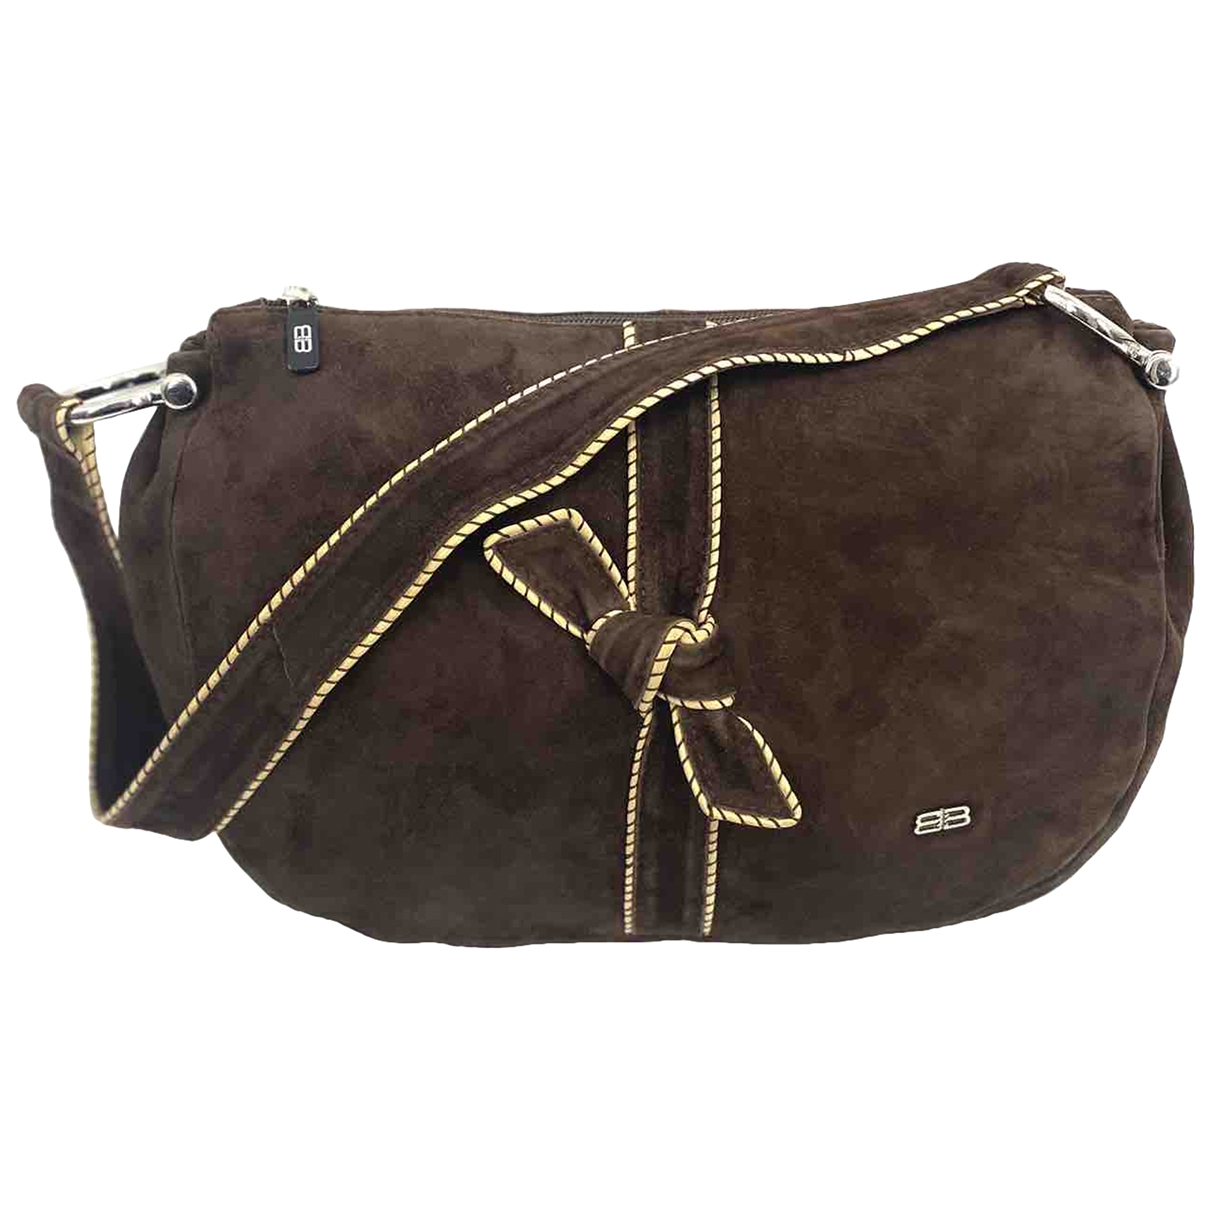 Balenciaga \N Brown Suede handbag for Women \N